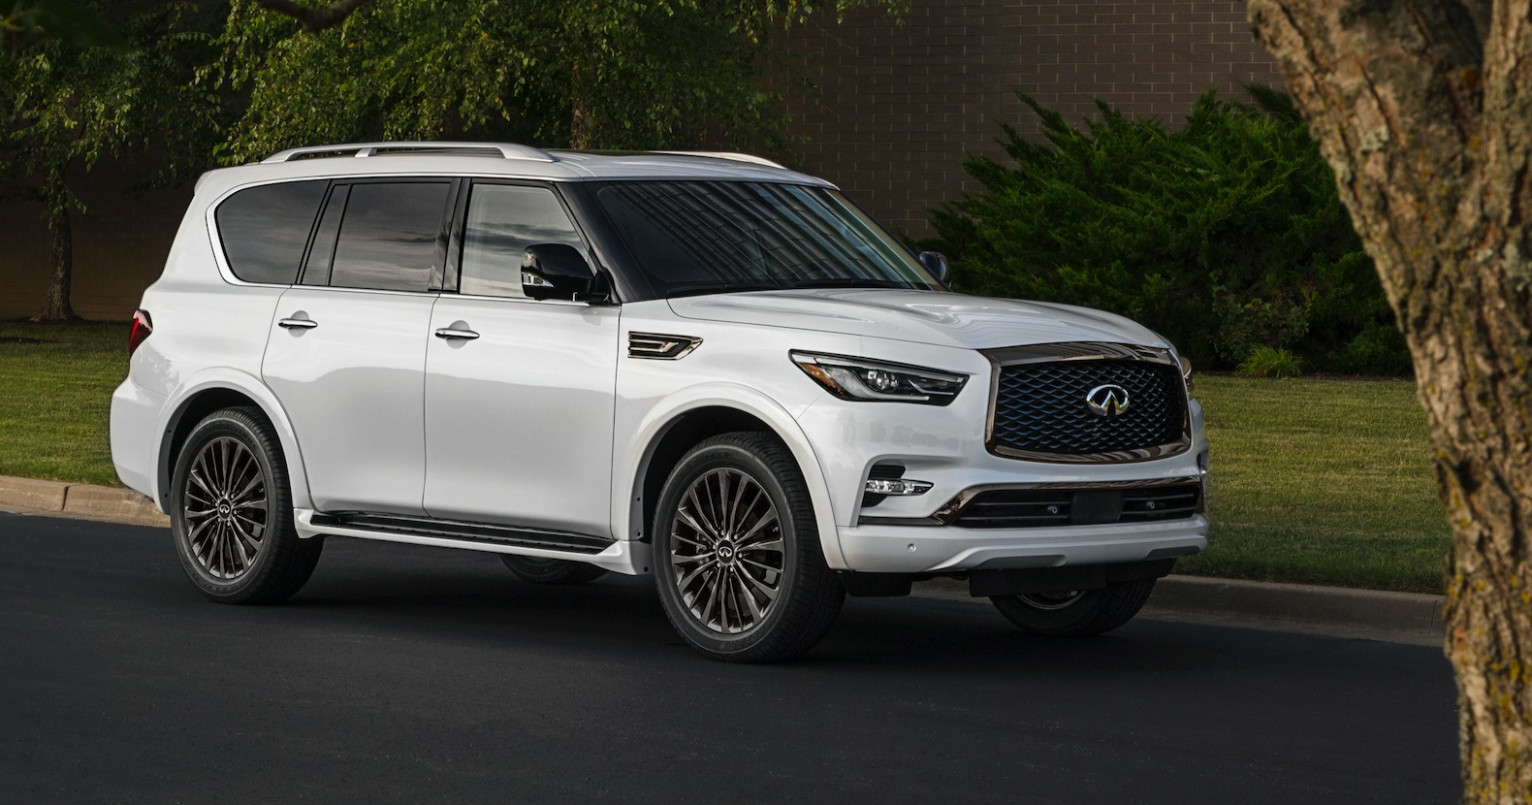 Redesign and Review 2022 Infiniti QX80